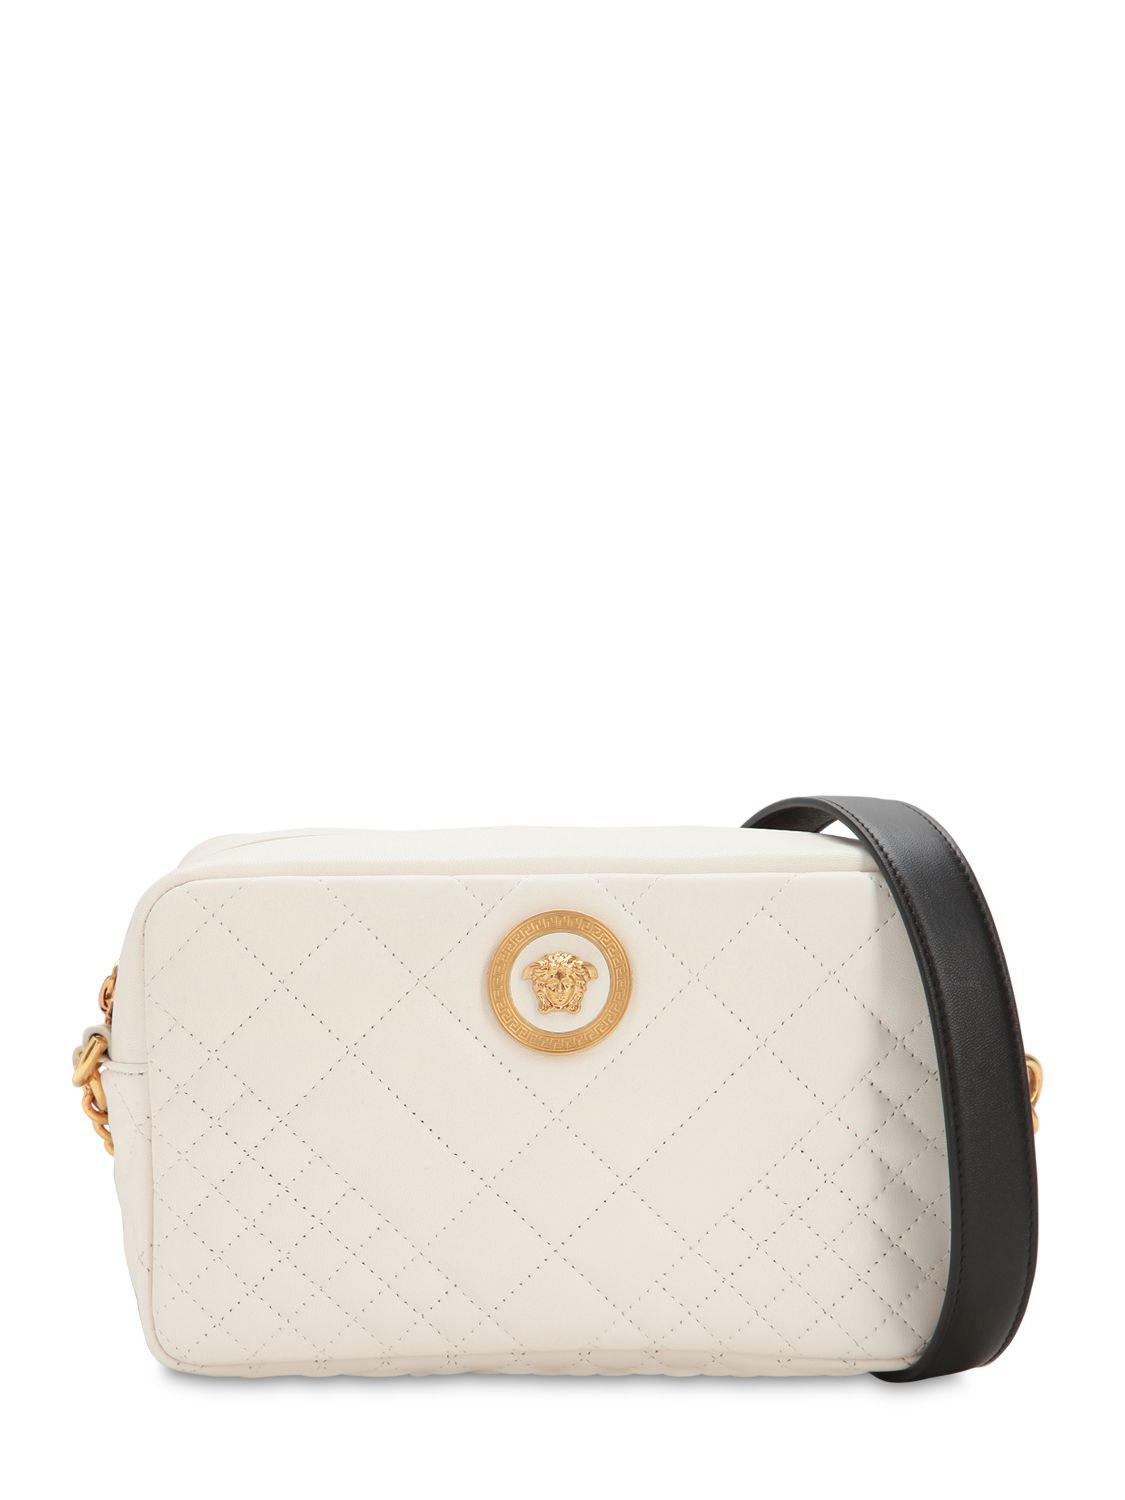 6ccfc41406 Versace Icon Medium Quilted Leather Camera Bag in White - Lyst